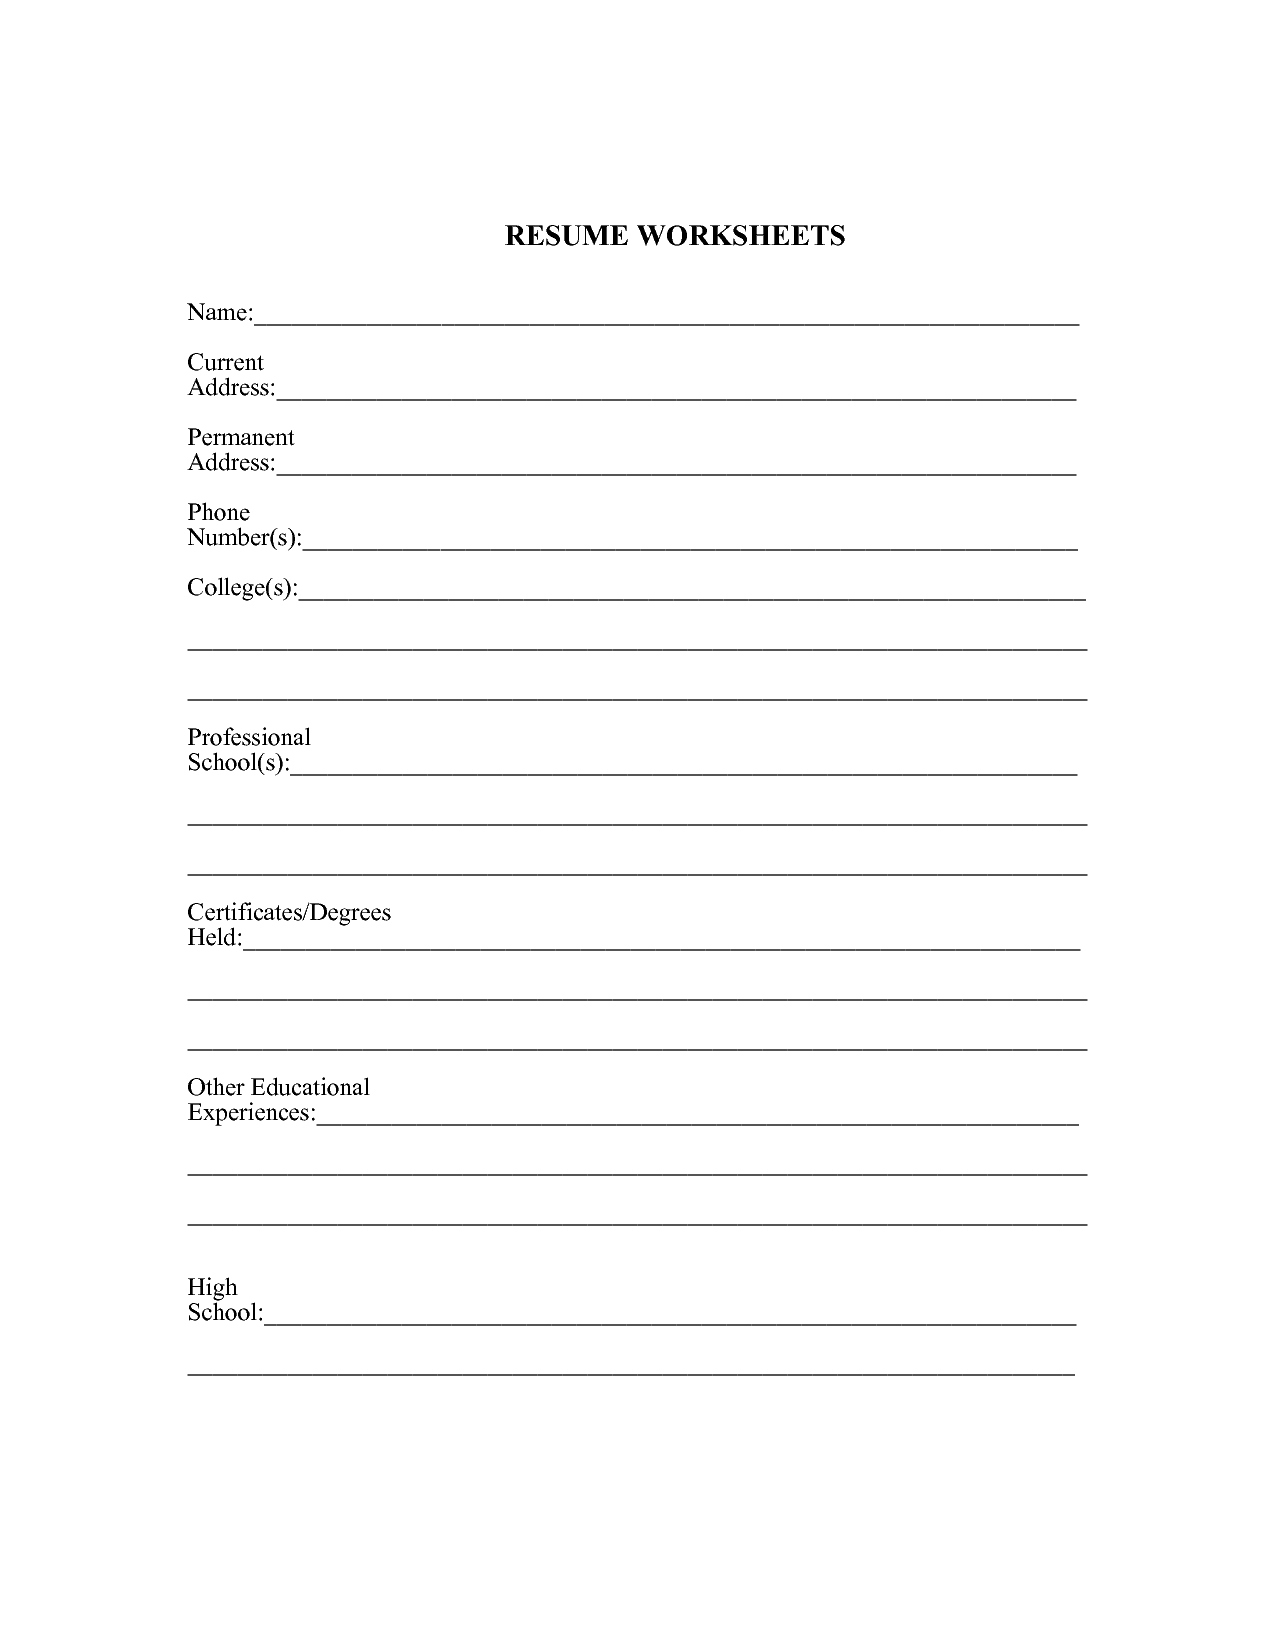 Resume Worksheet For High School Students  Jwritings Regarding Resume Worksheet For Middle School Students